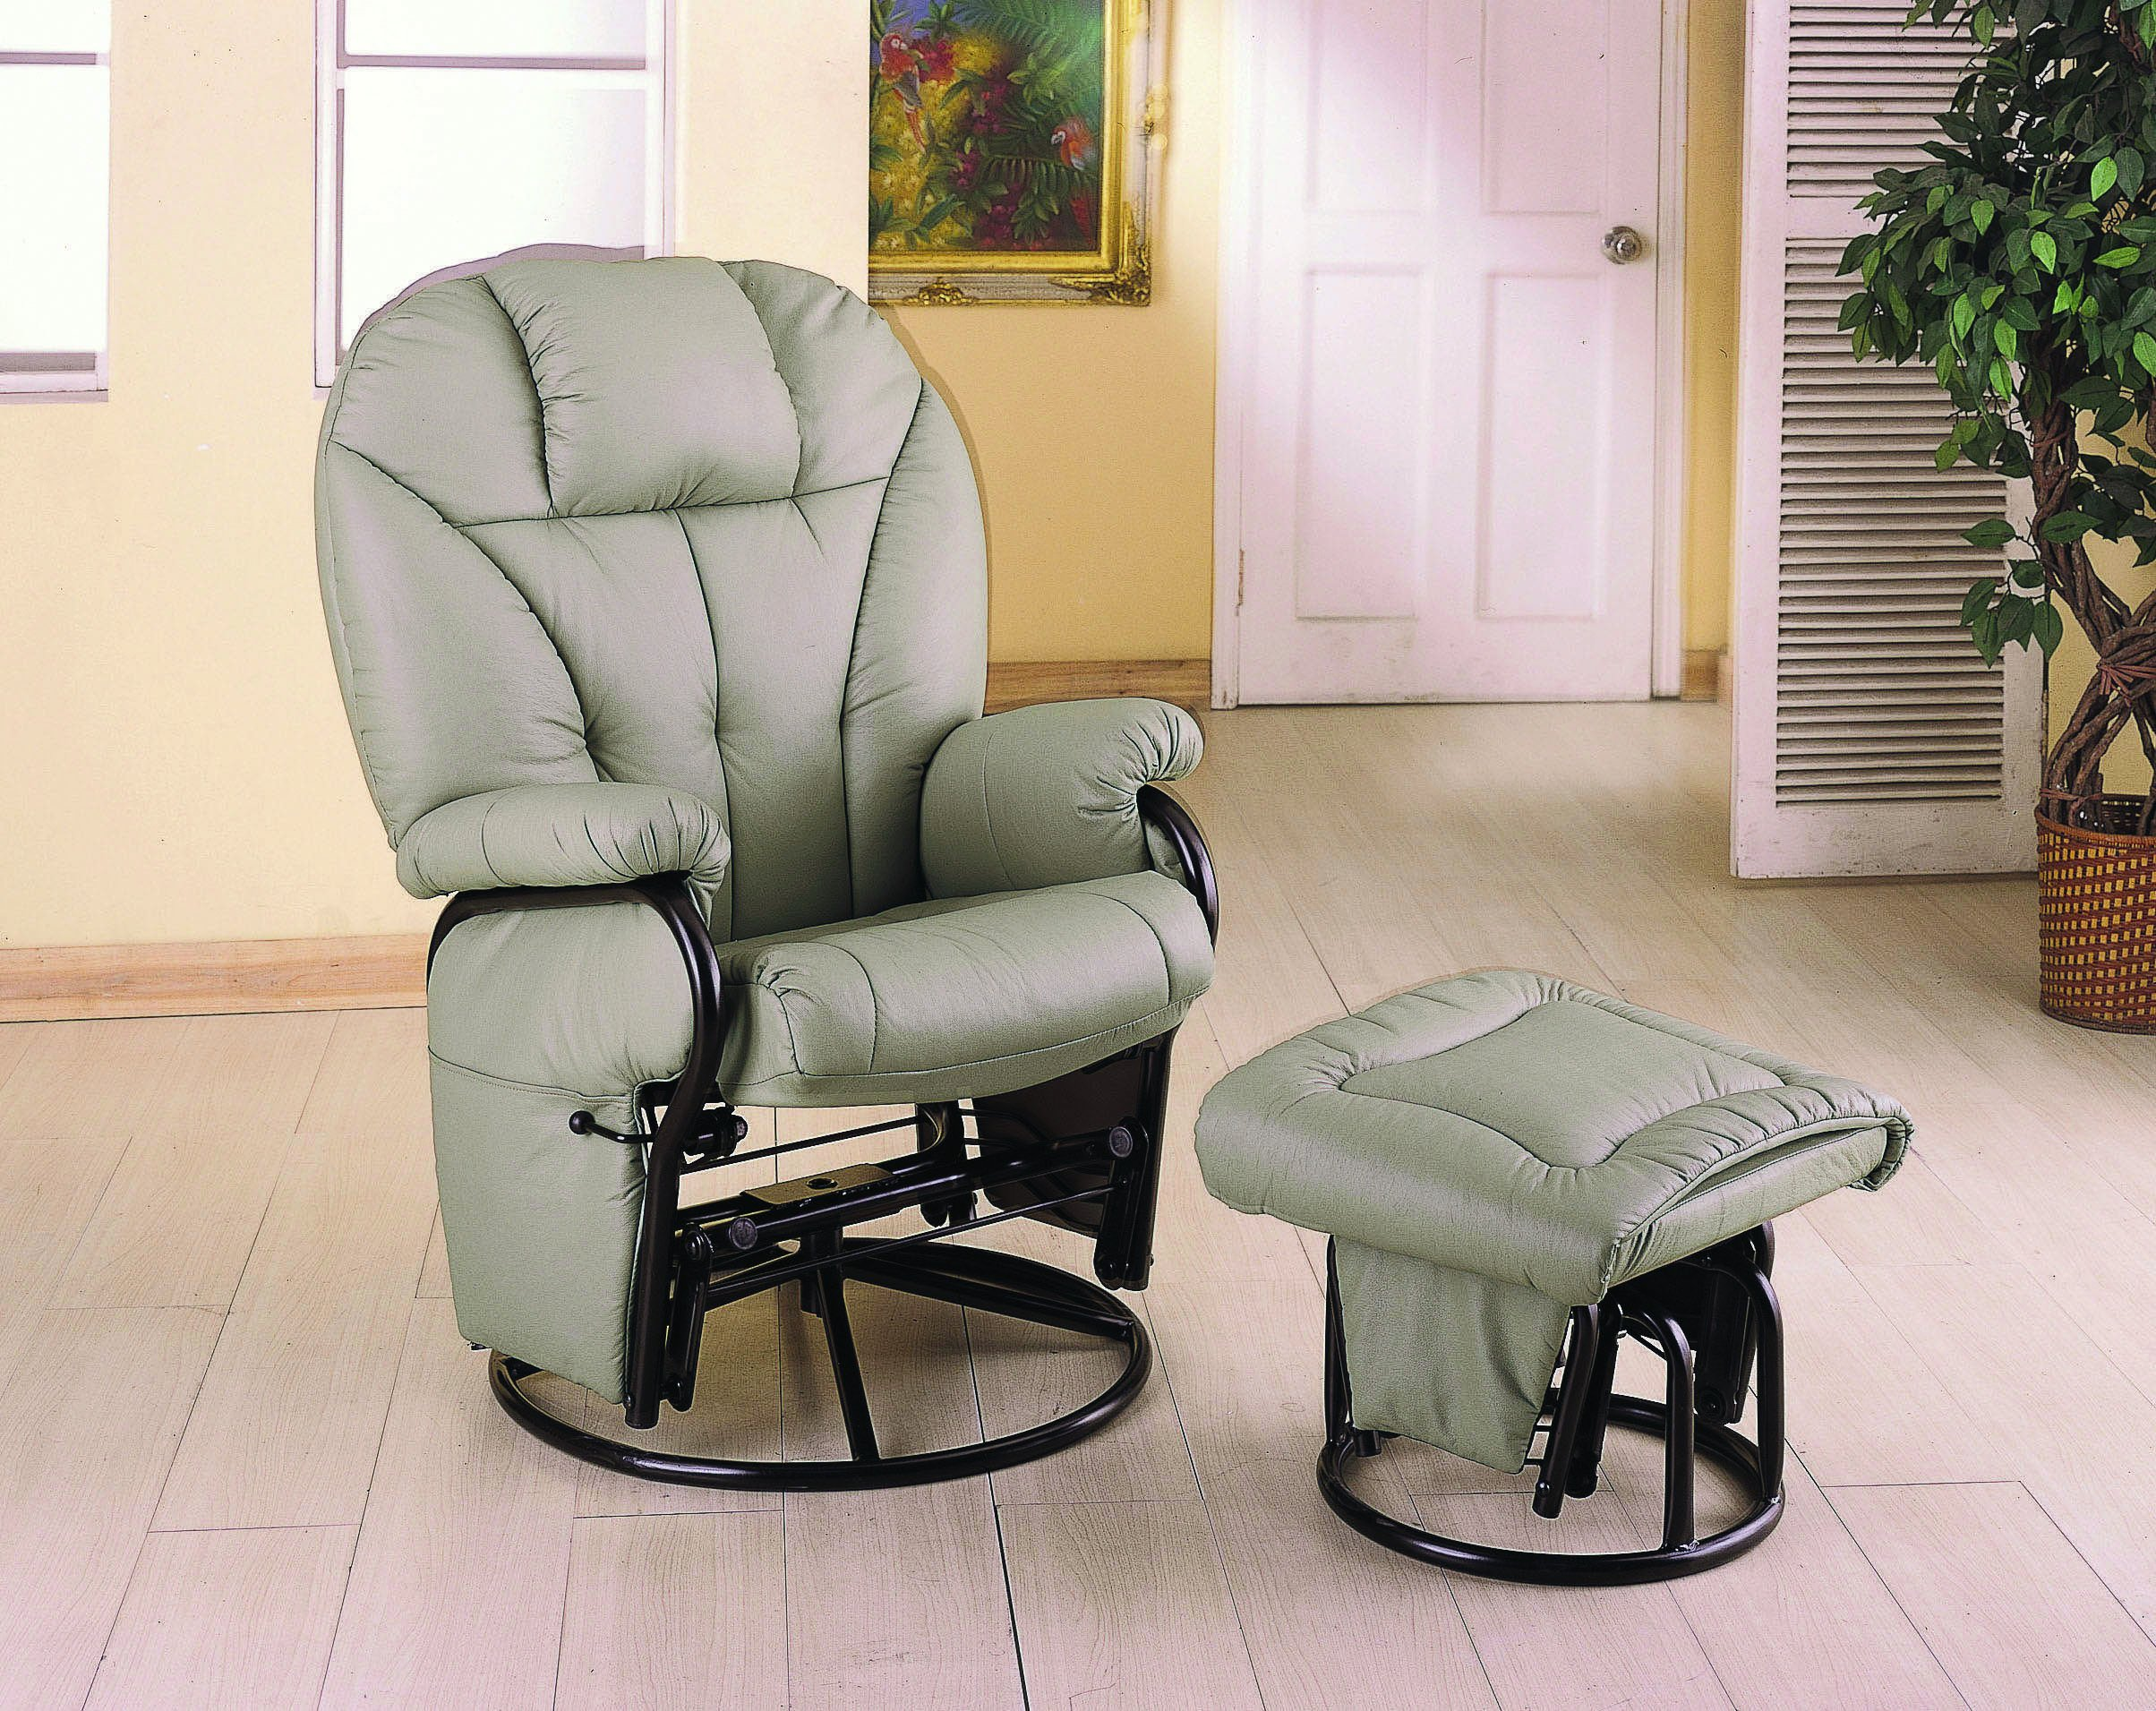 Leatherette Glider Recliner with Matching Ottoman Bone by Coaster Home Furnishings